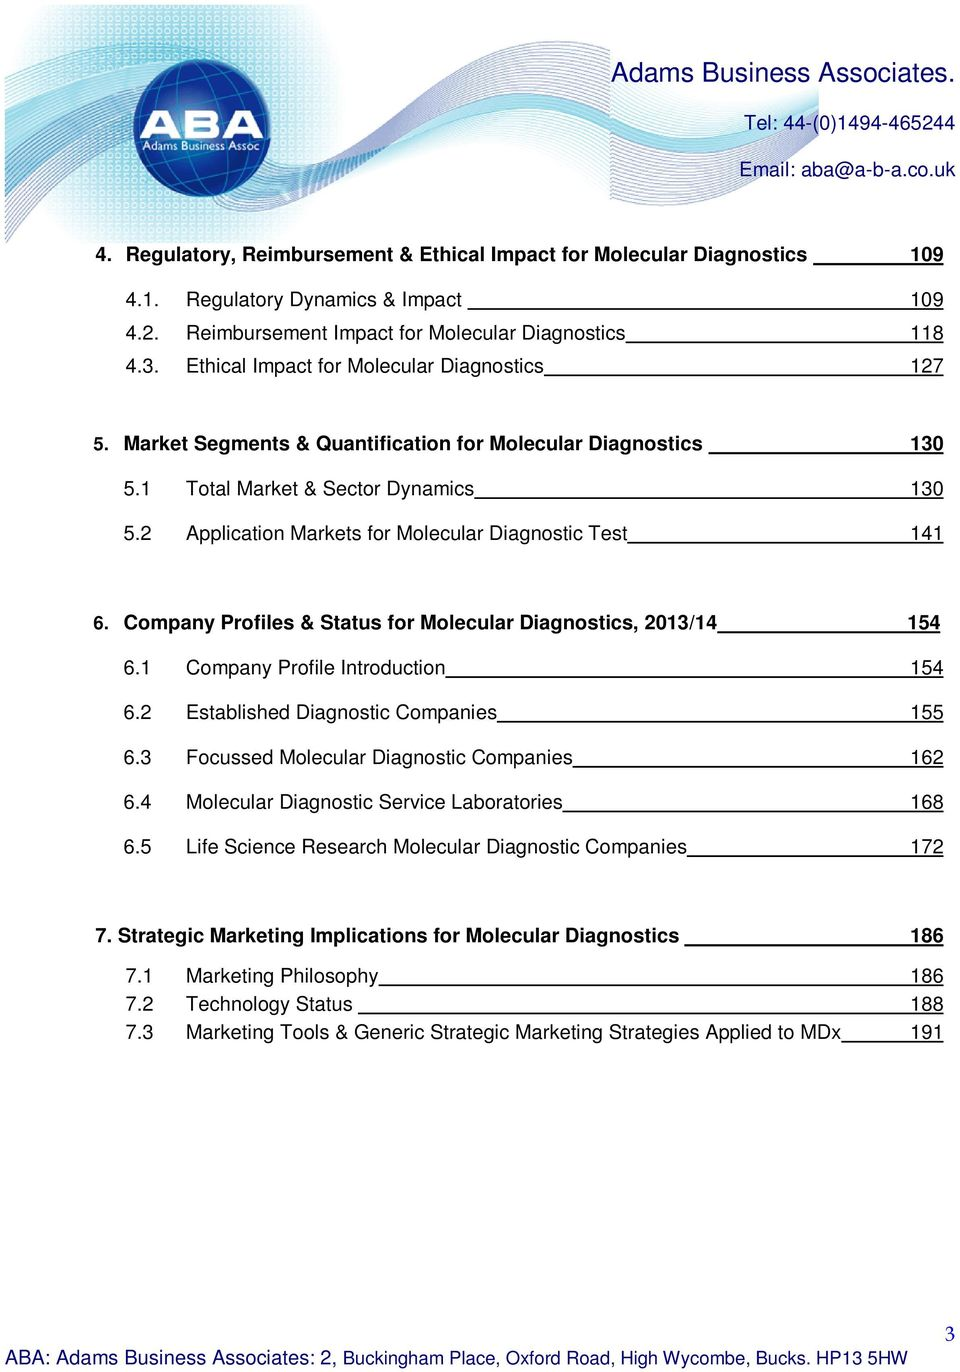 2 Application Markets for Molecular Diagnostic Test 141 6. Company Profiles & Status for Molecular Diagnostics, 2013/14 154 6.1 Company Profile Introduction 154 6.